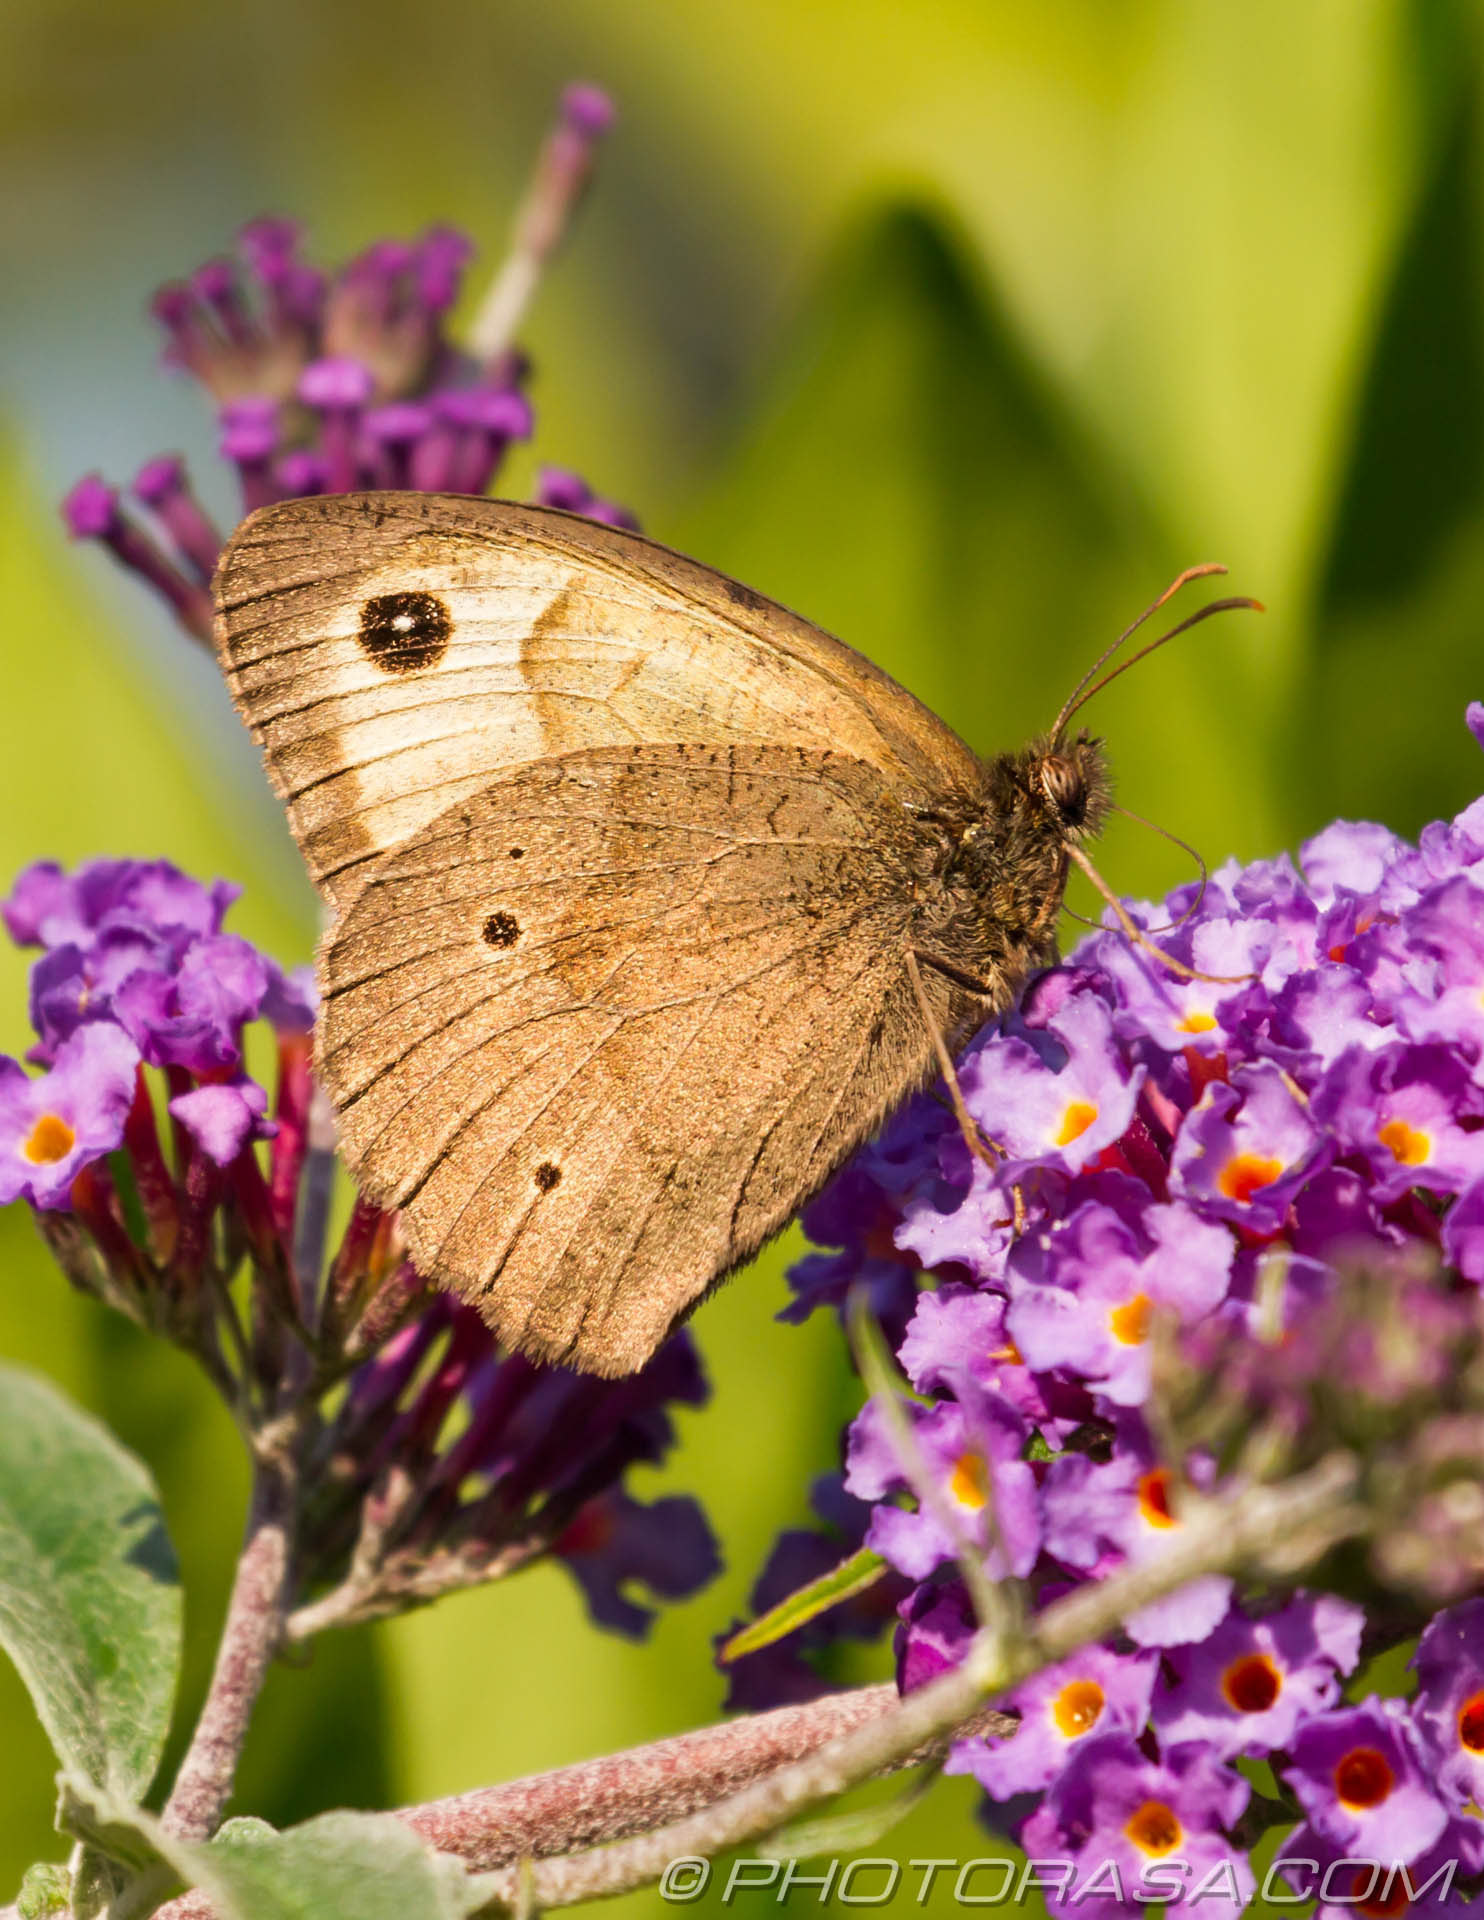 http://photorasa.com/meadow-brown-butterfly/meadow-brown-male-underside-with-3-black-spots/